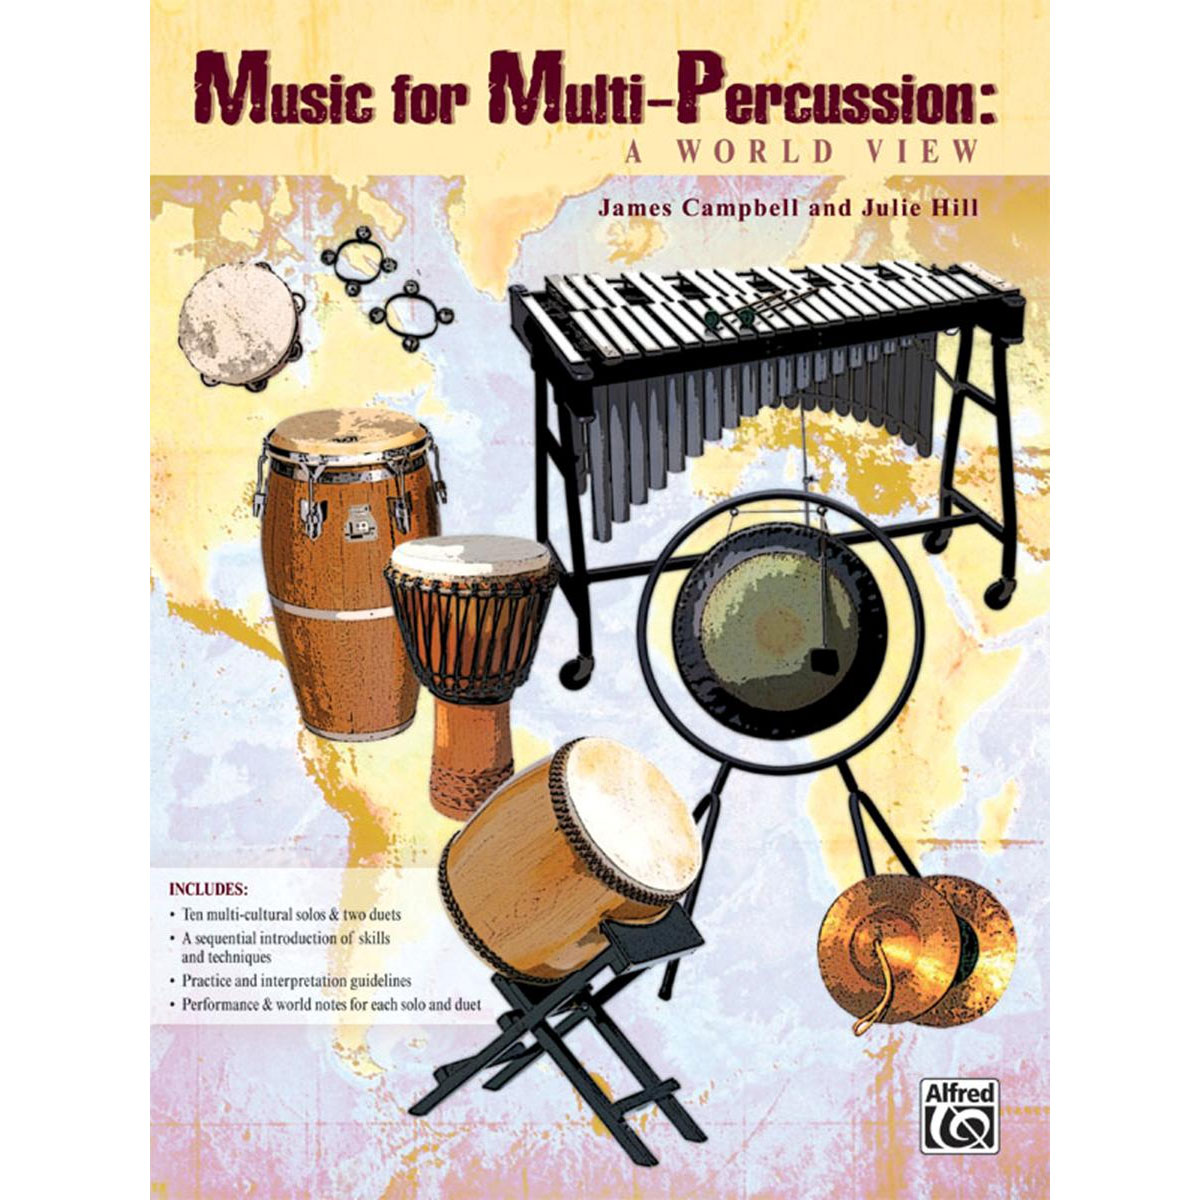 Music for MultiPercussion by James Campbell